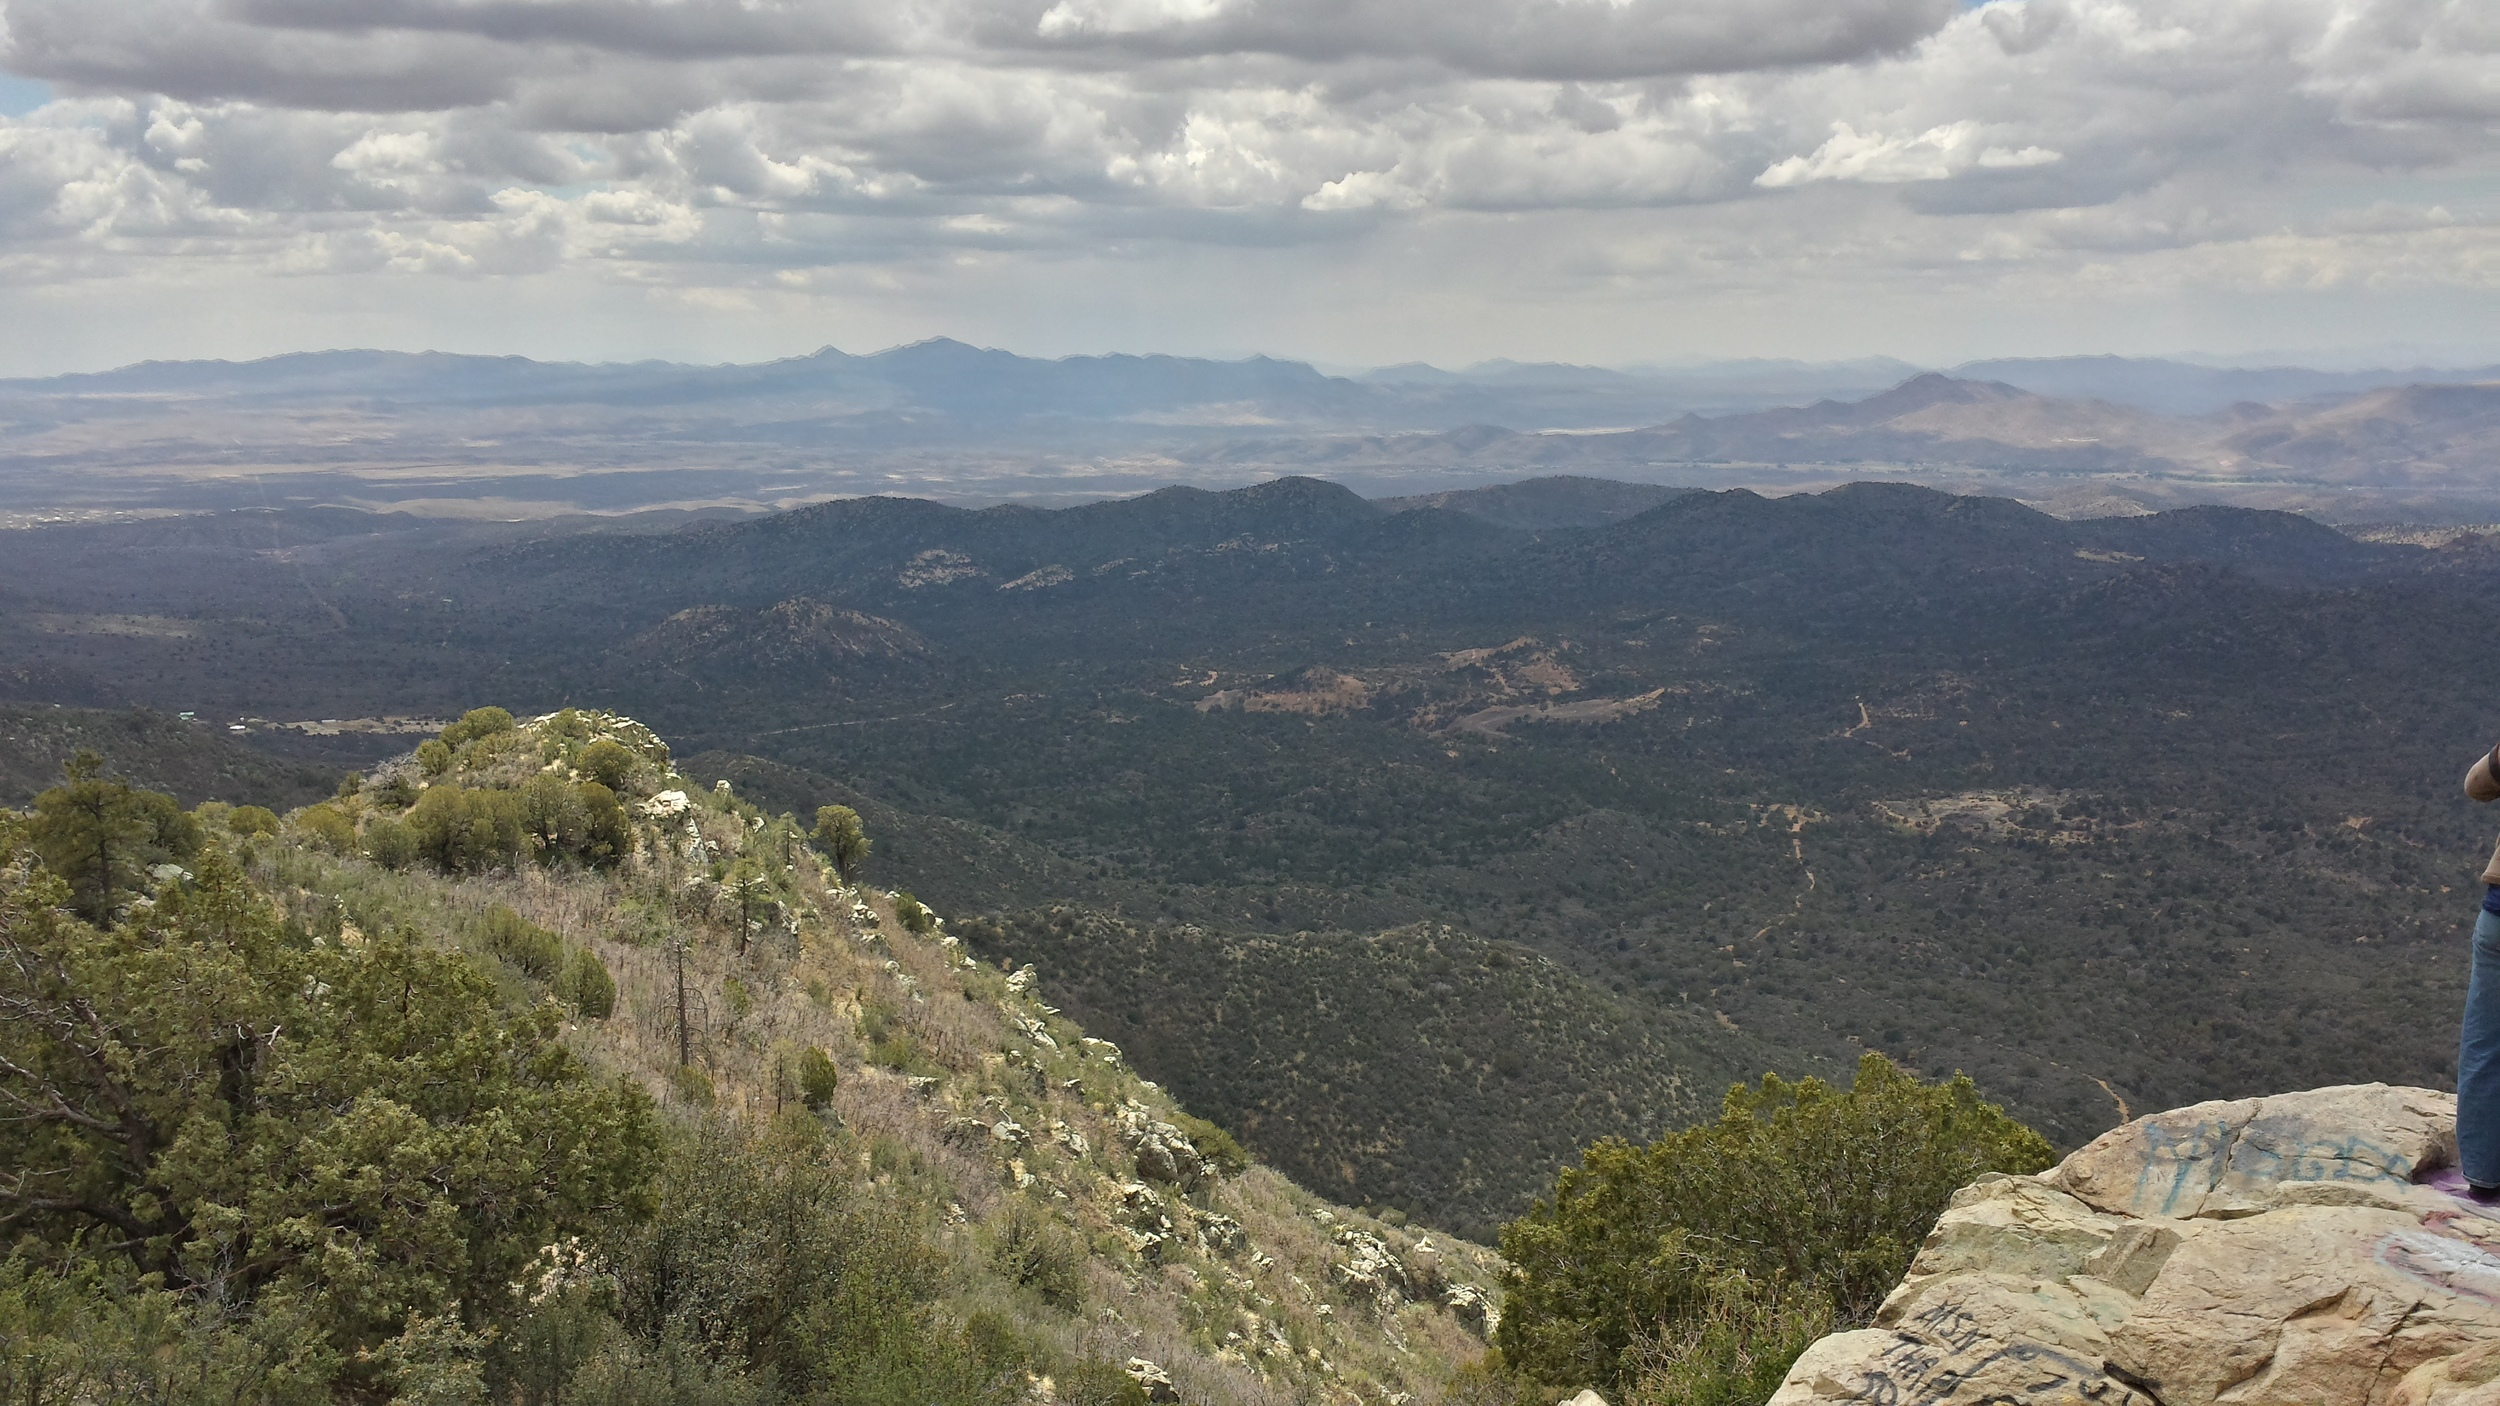 For perspective, here's the view looking down from Sierra Prieta. You can't even see Skull Valley.